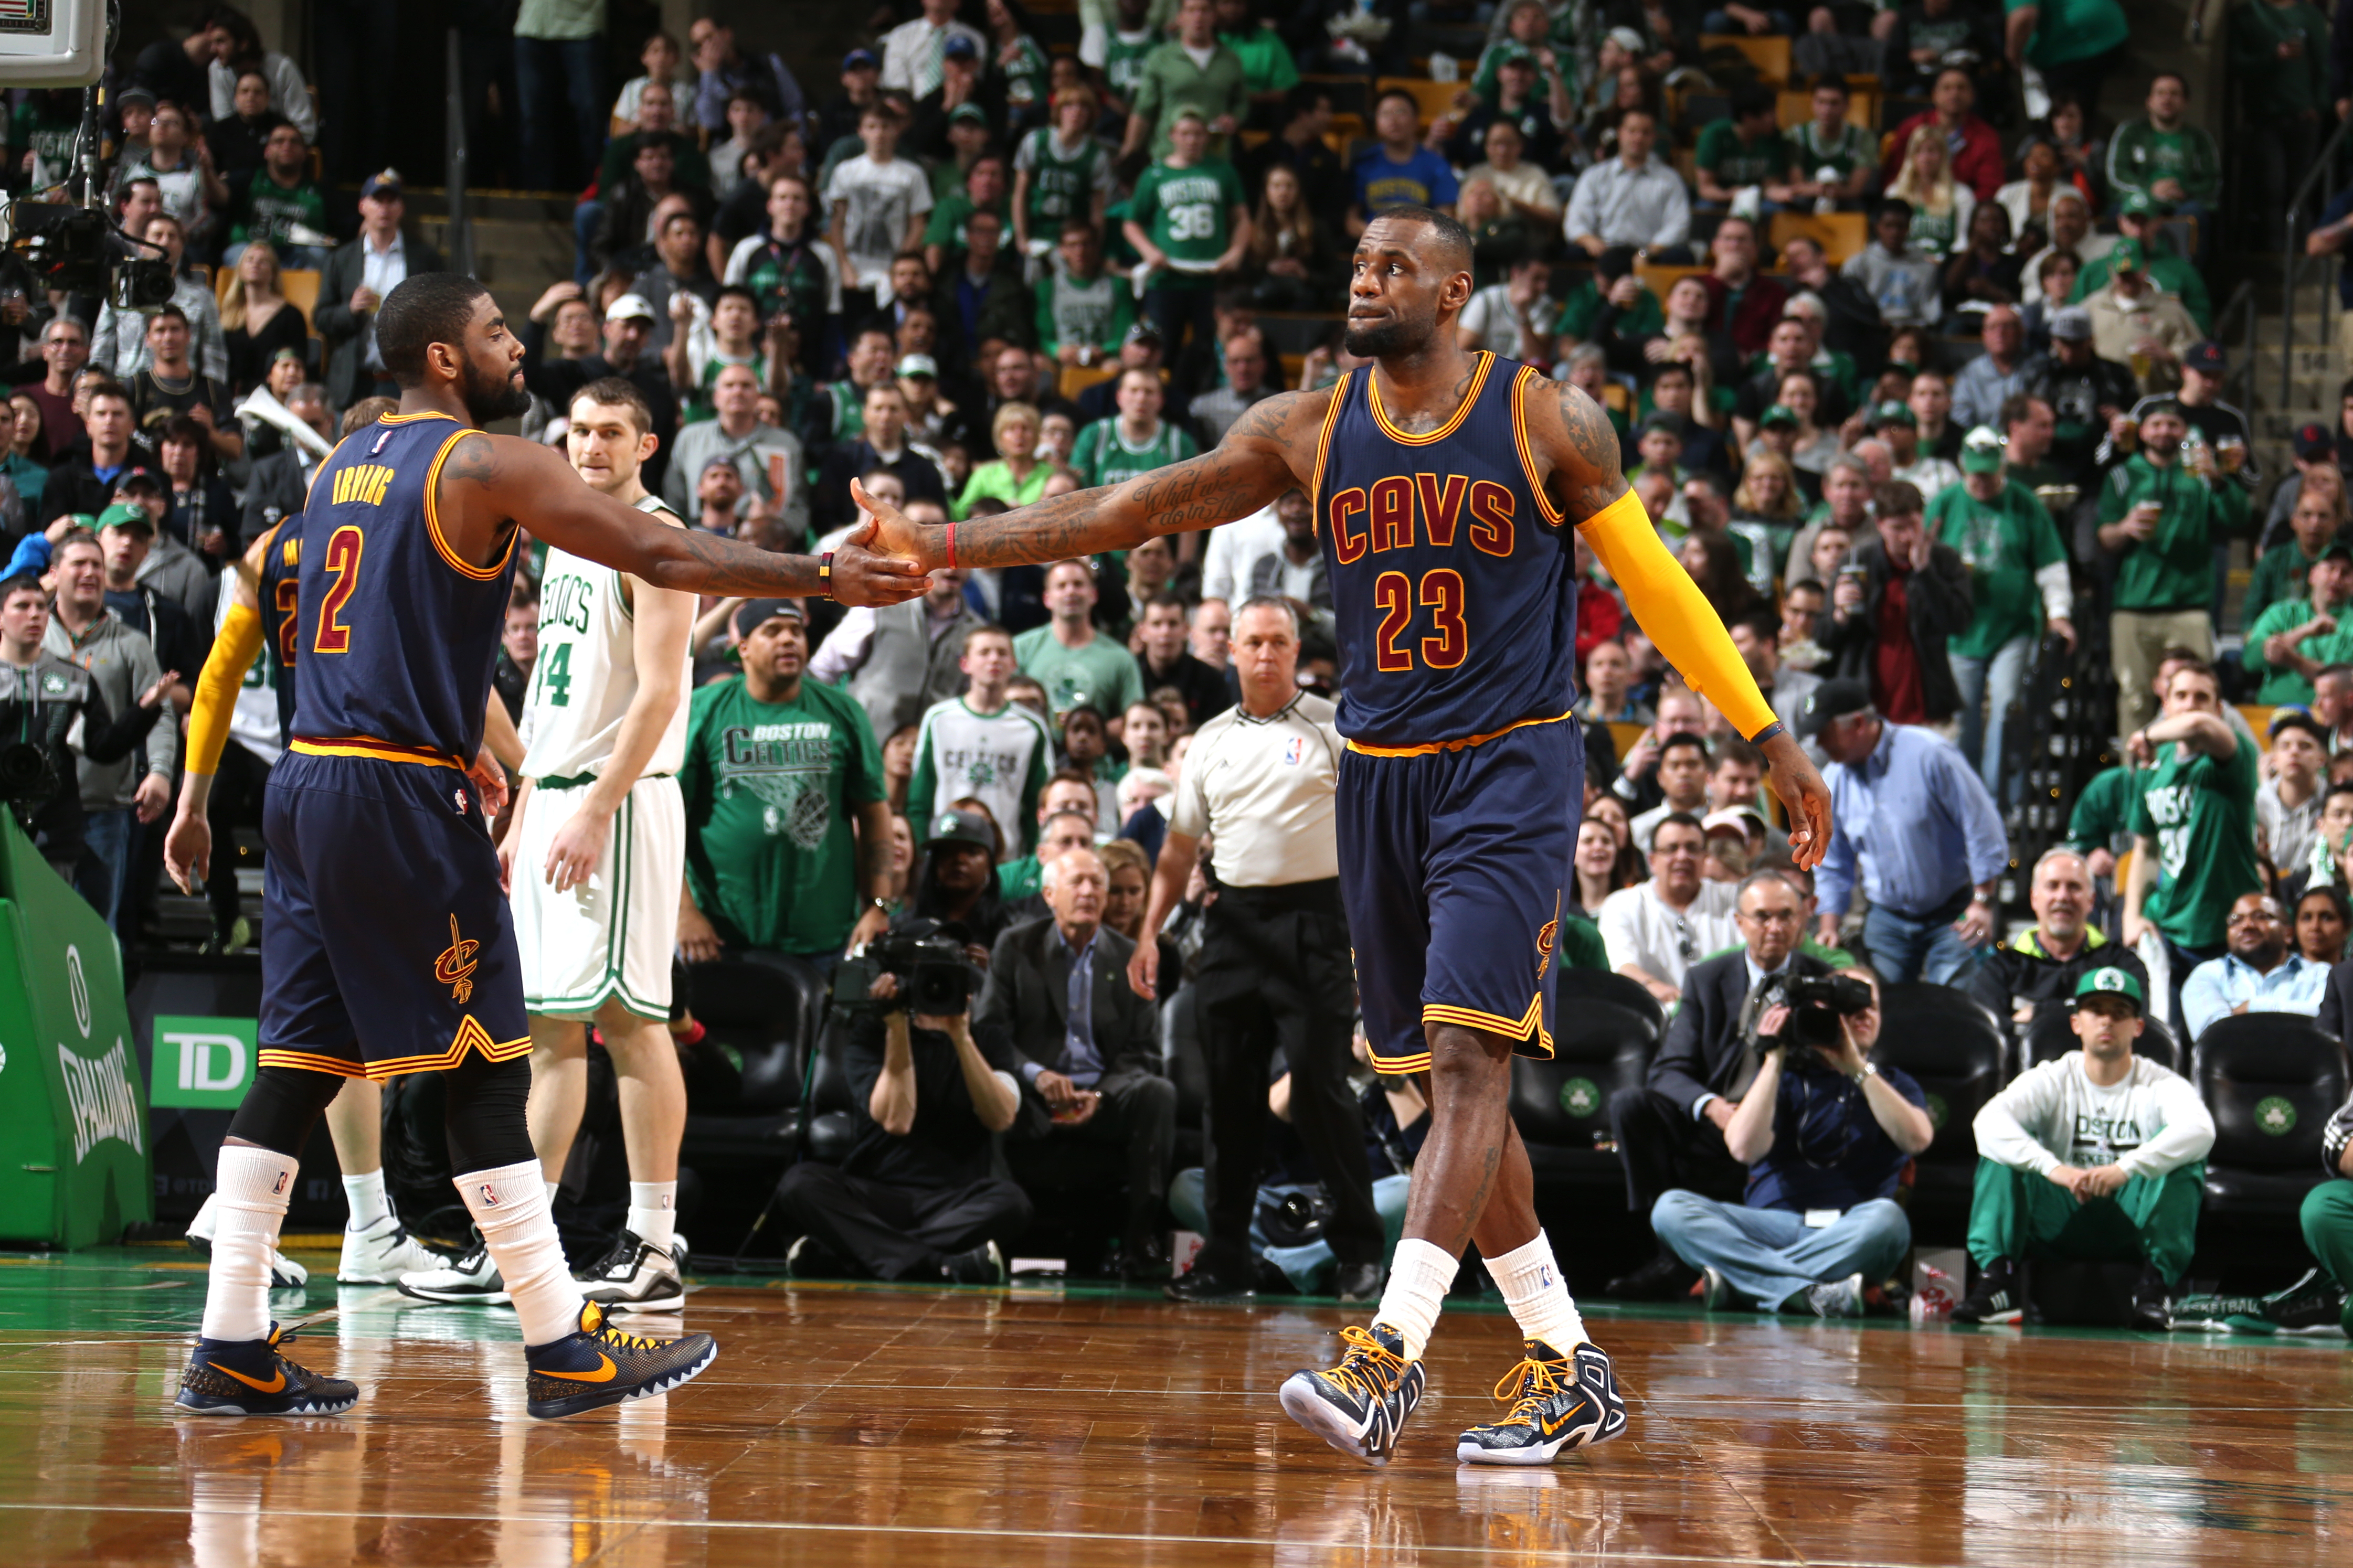 BOSTON, MA - APRIL 23:  Kyrie Irving #2 and LeBron James #23 of the Cleveland Cavaliers during the game against the Boston Celtics during Game Three of the Eastern Conference Quarterfinals of the 2015 NBA Playoffs on April 23, 2015 at the TD Garden in Bos